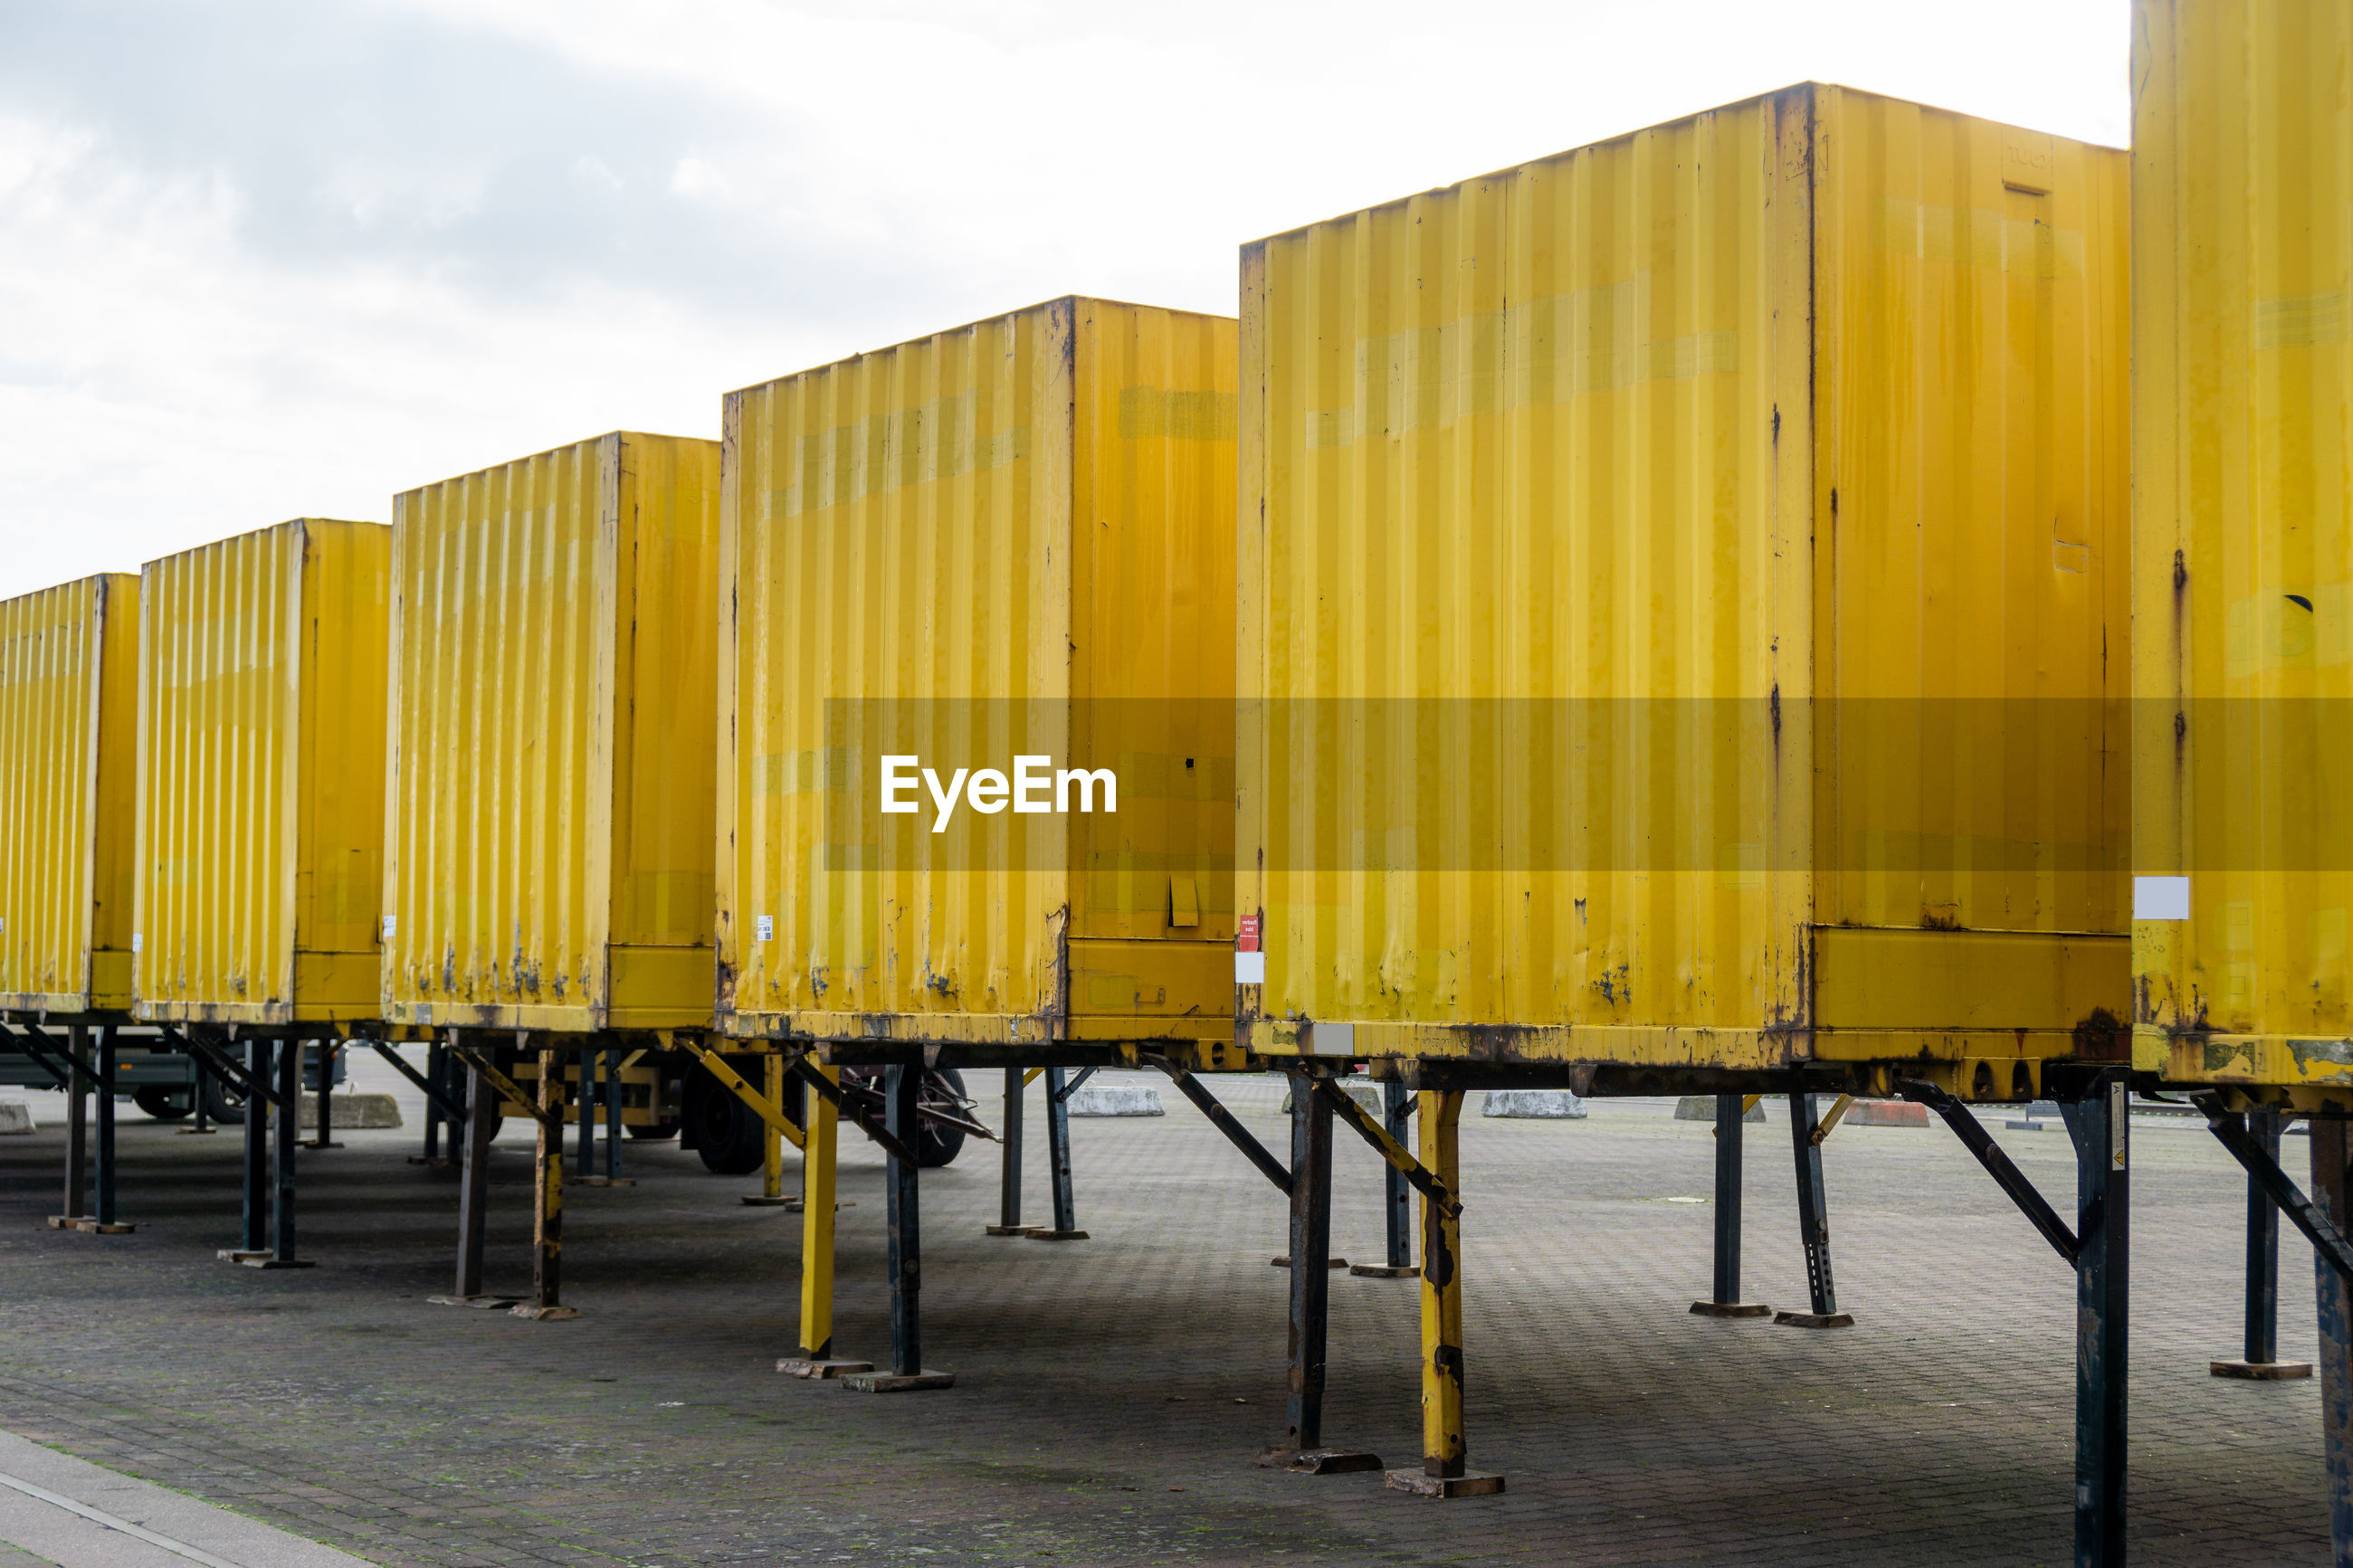 YELLOW METALLIC STRUCTURE ON PIER AGAINST SKY IN CITY